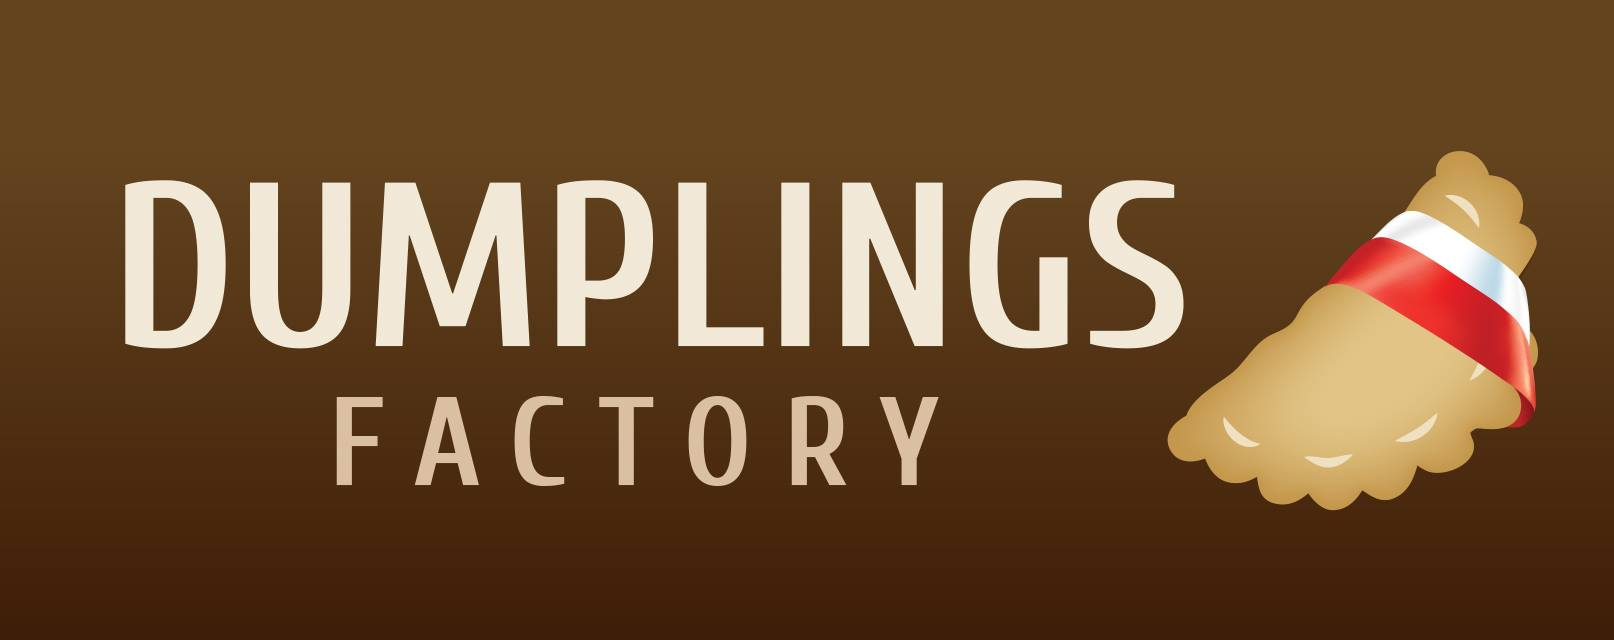 Dumplings Factory in Newcastle under Lyme